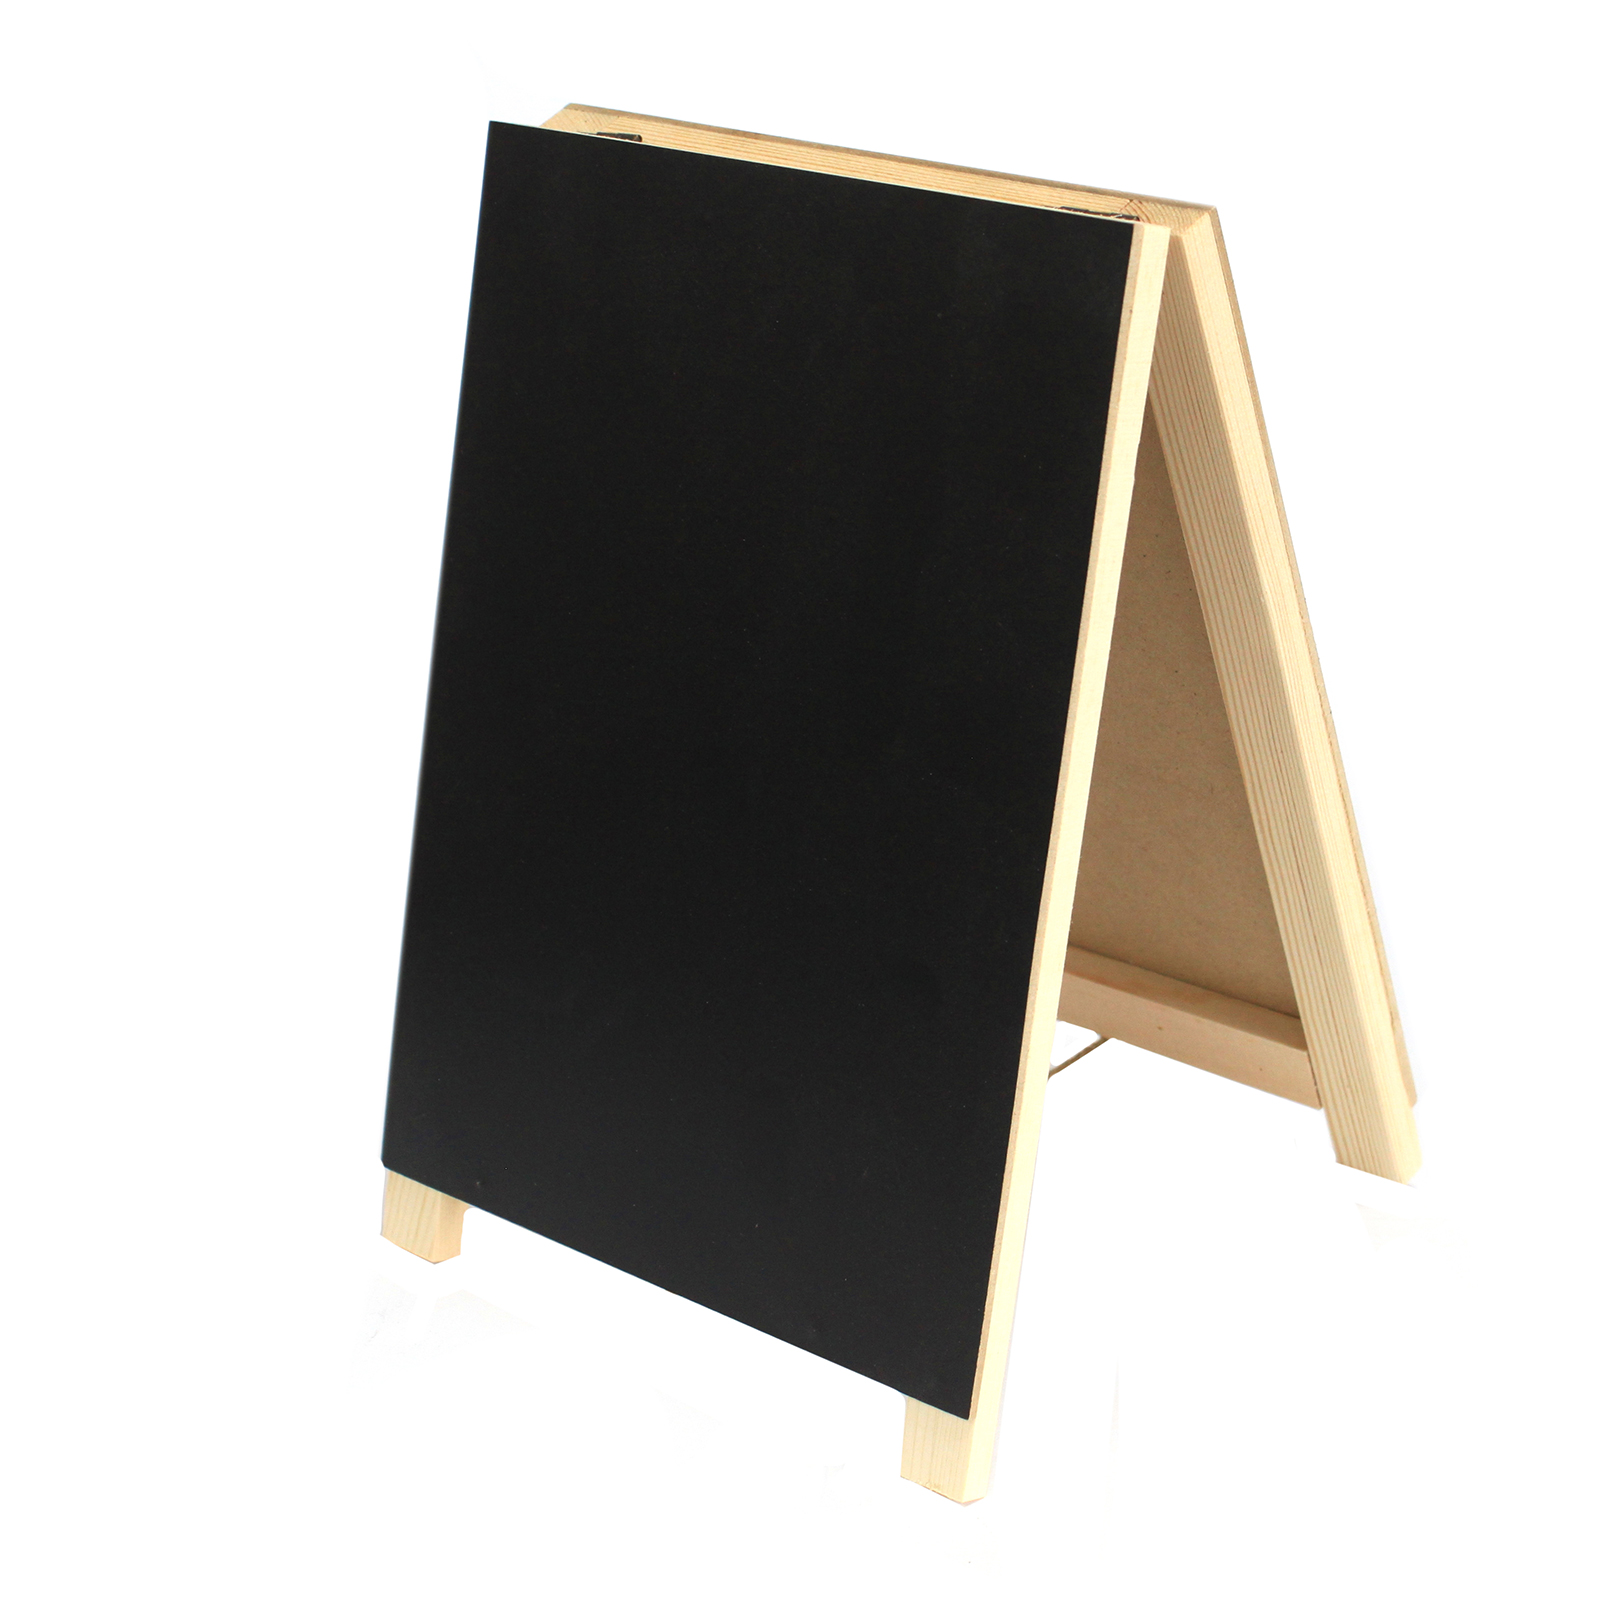 Lrg Mini Blackboards - 26x18cm